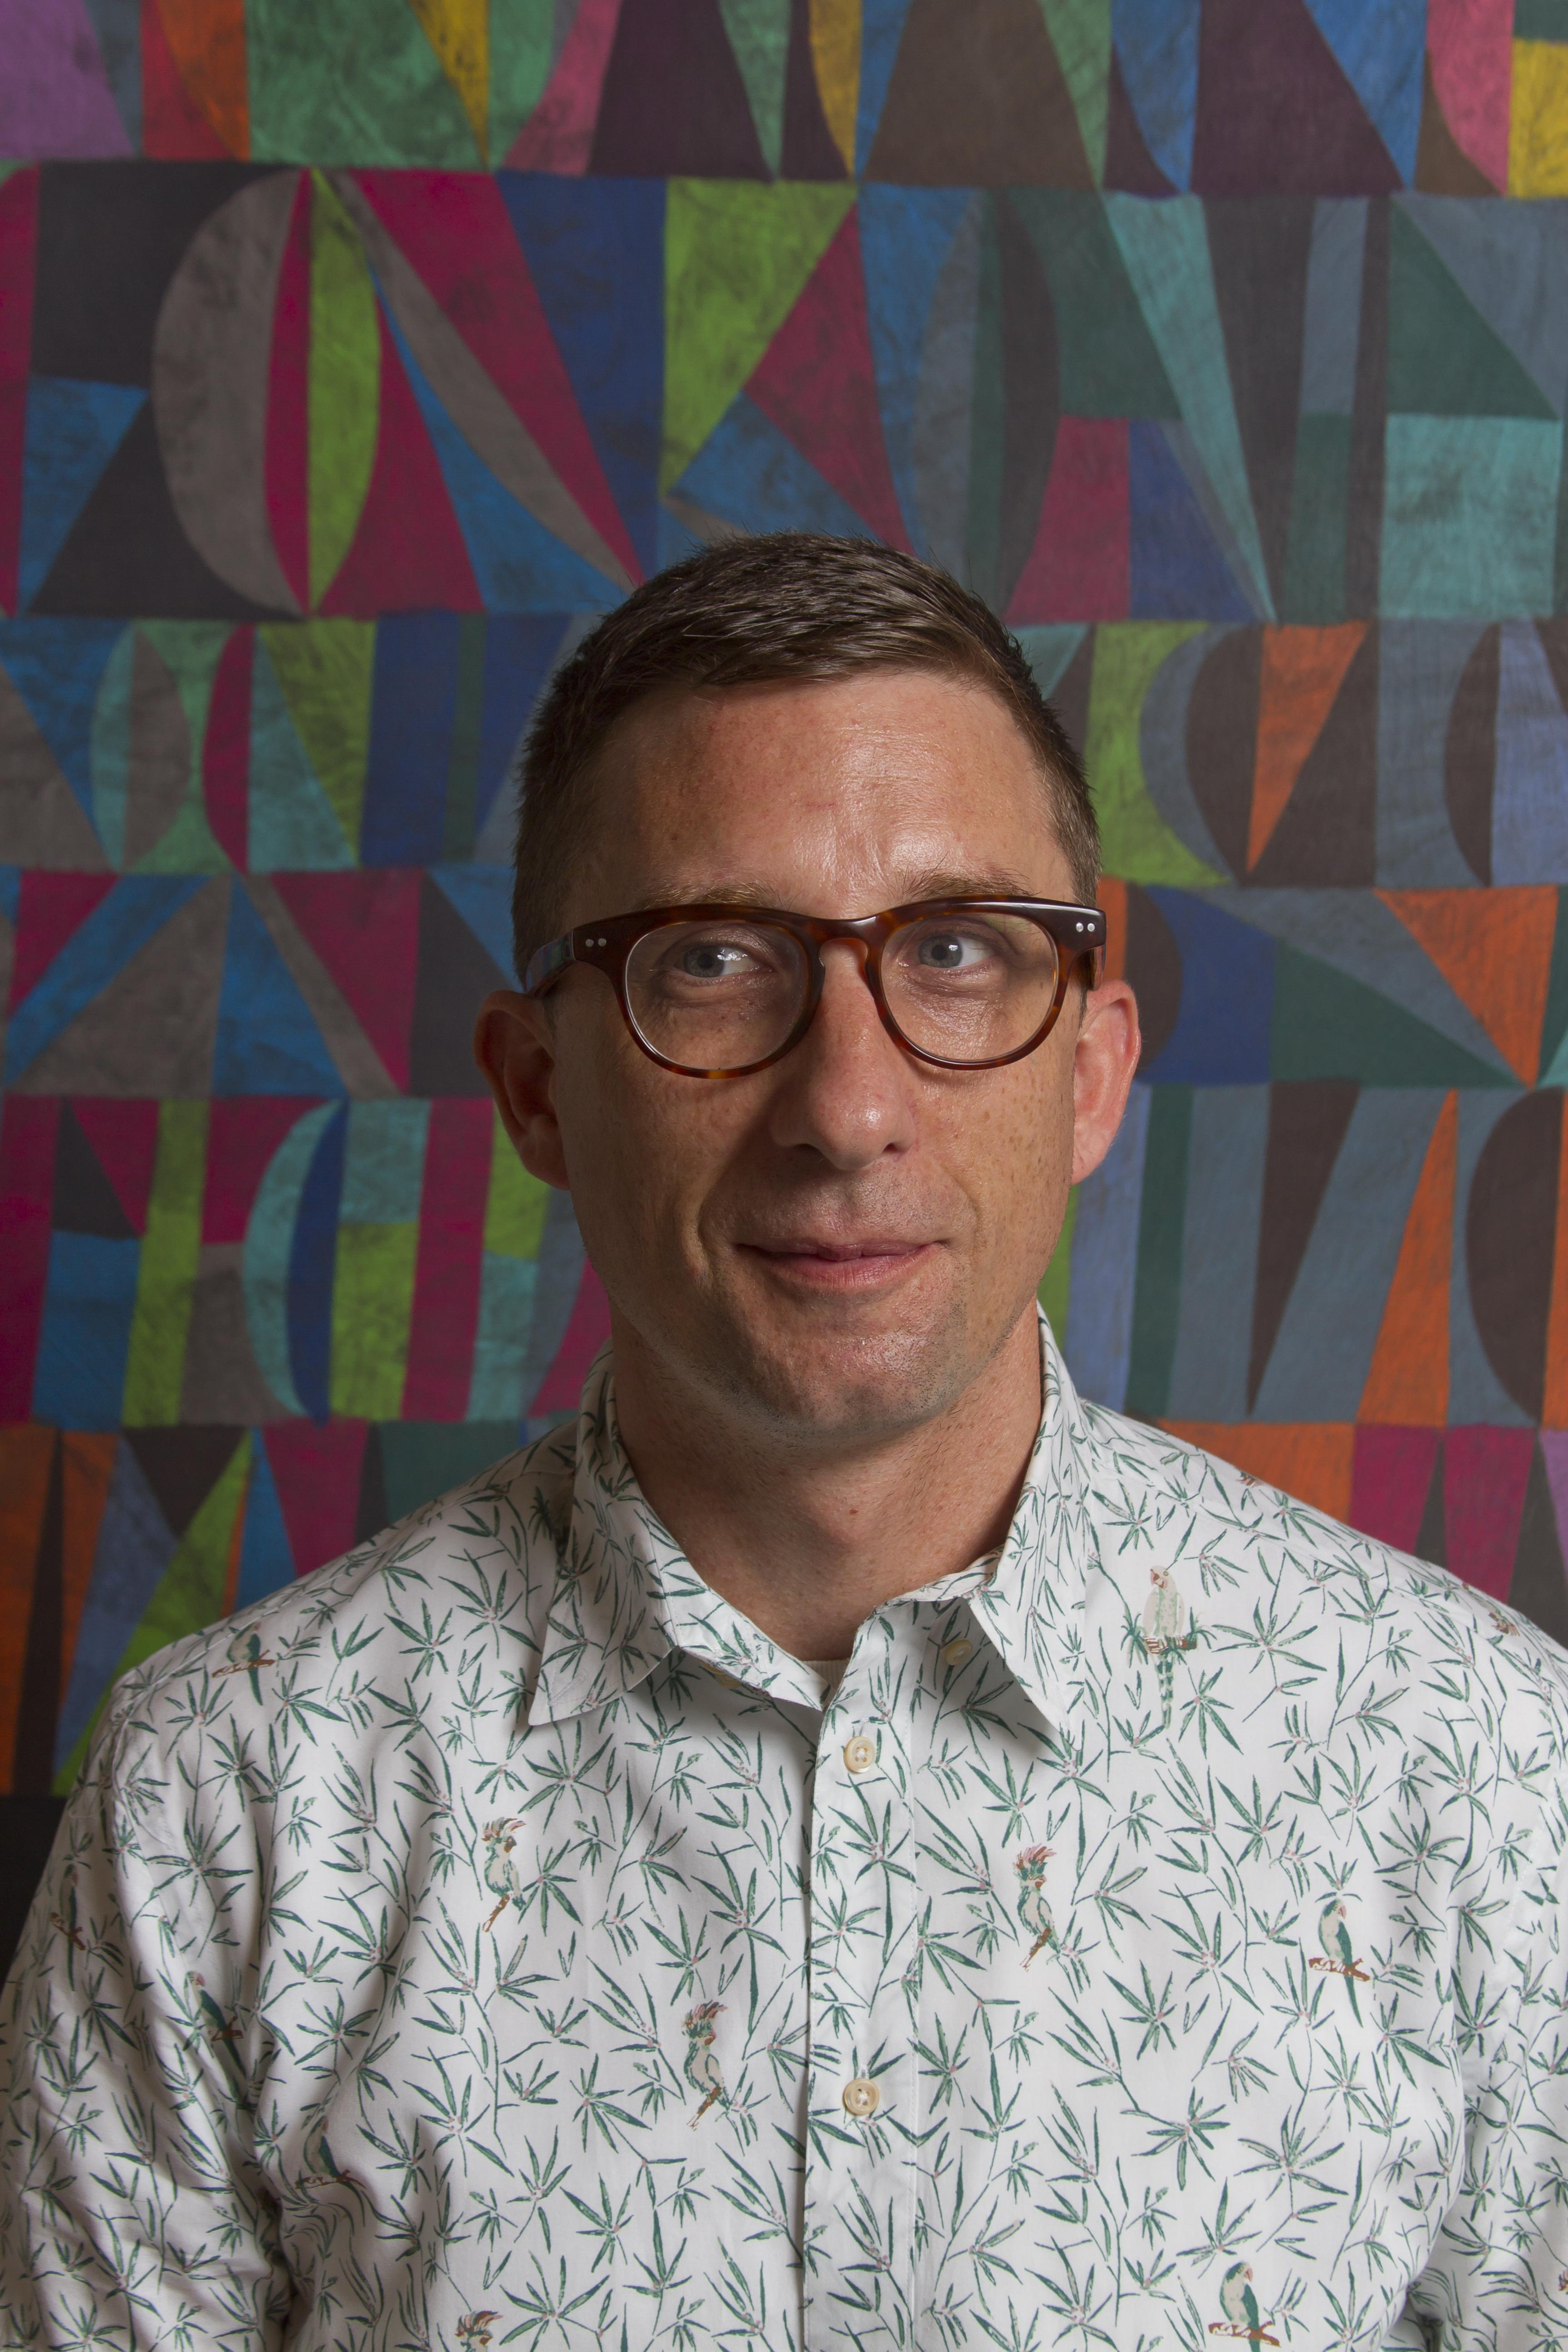 A light-skinned man with short brown hair, horn-rimmed tortoiseshell glasses, and leaf-patterned shirt, is in front of a multicolor abstract background.